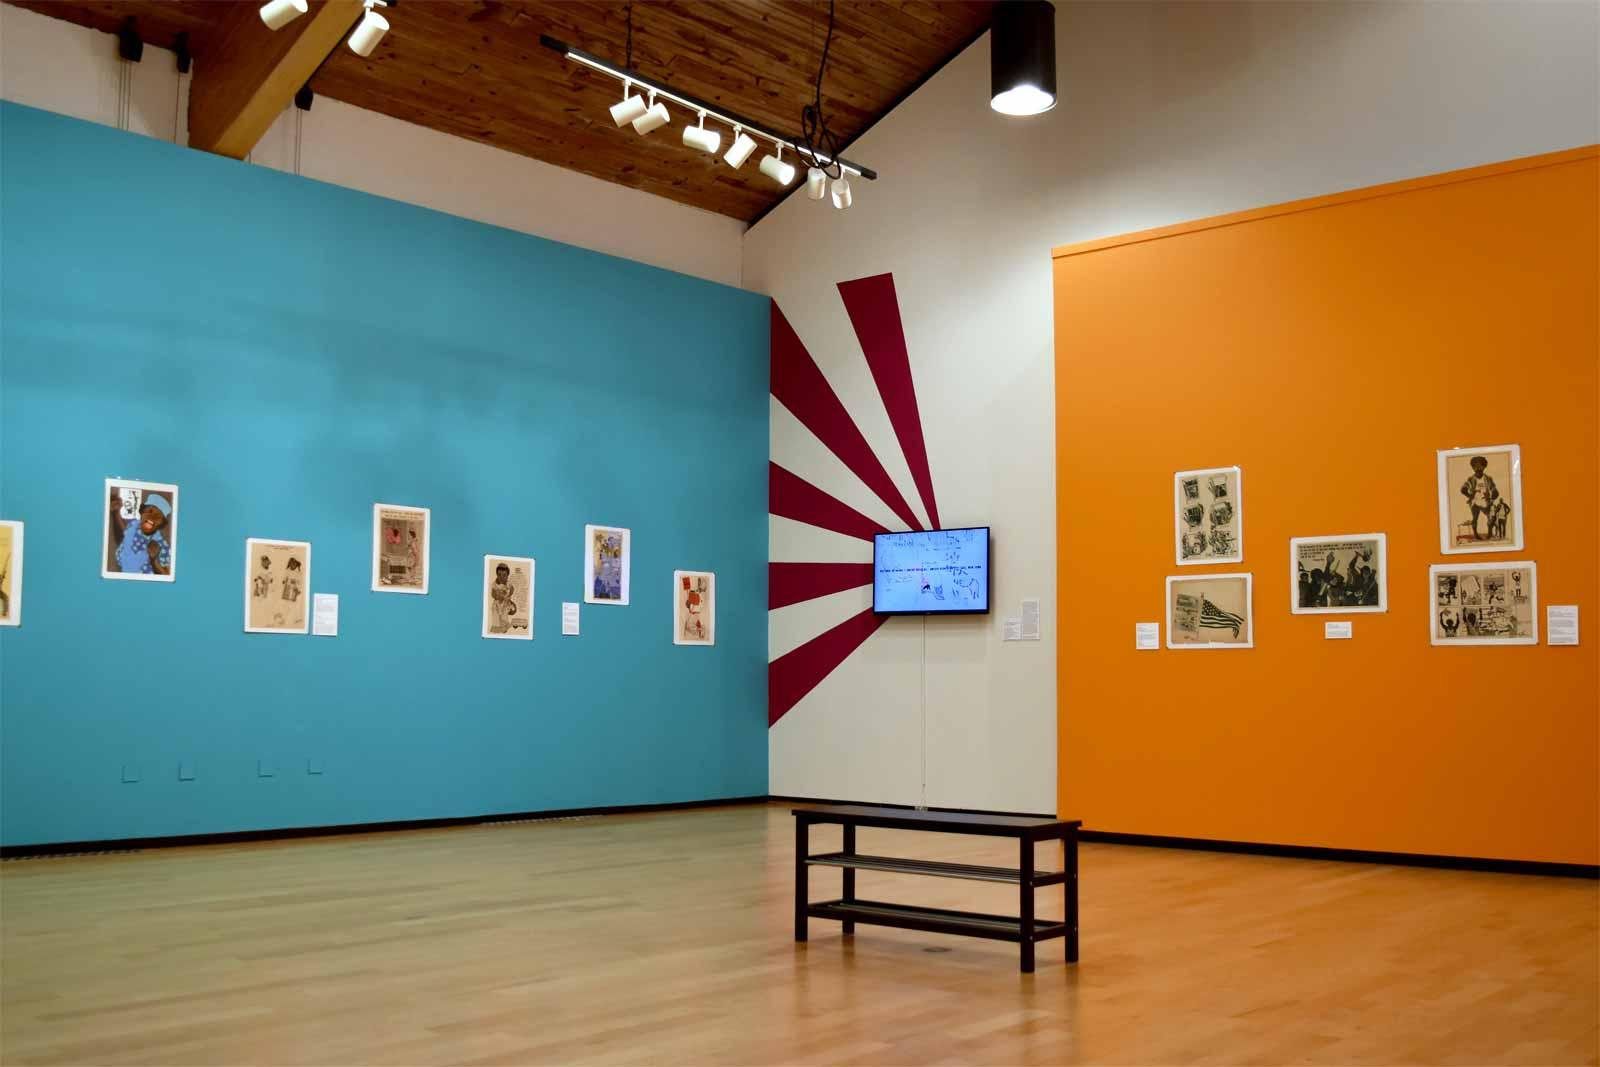 Installation view, Emory Douglas: Revolutionary Artist of the Black Panthers at the Denison Museum